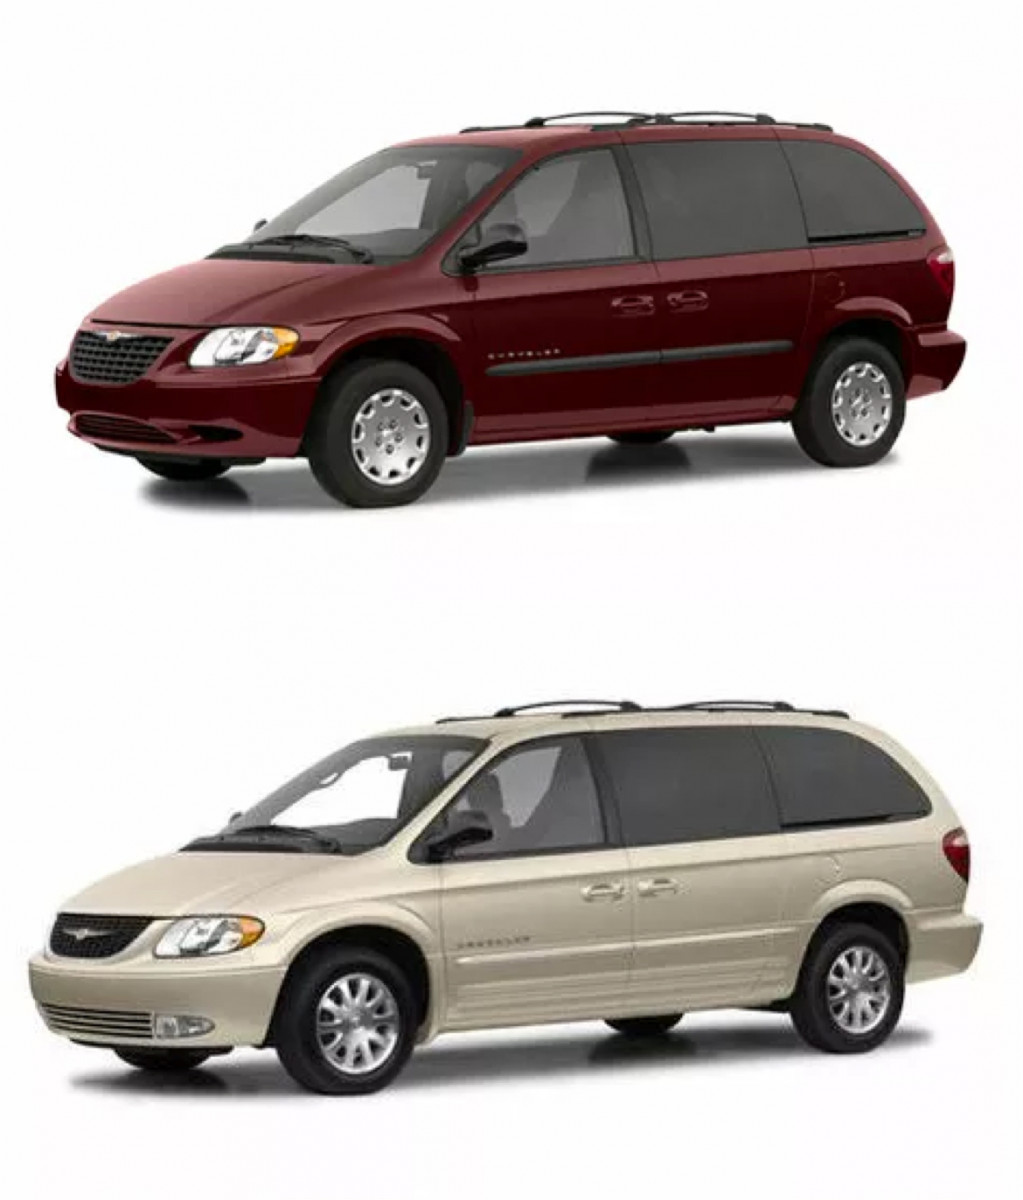 Following The Minivan's Fourth Generation In 2001, The